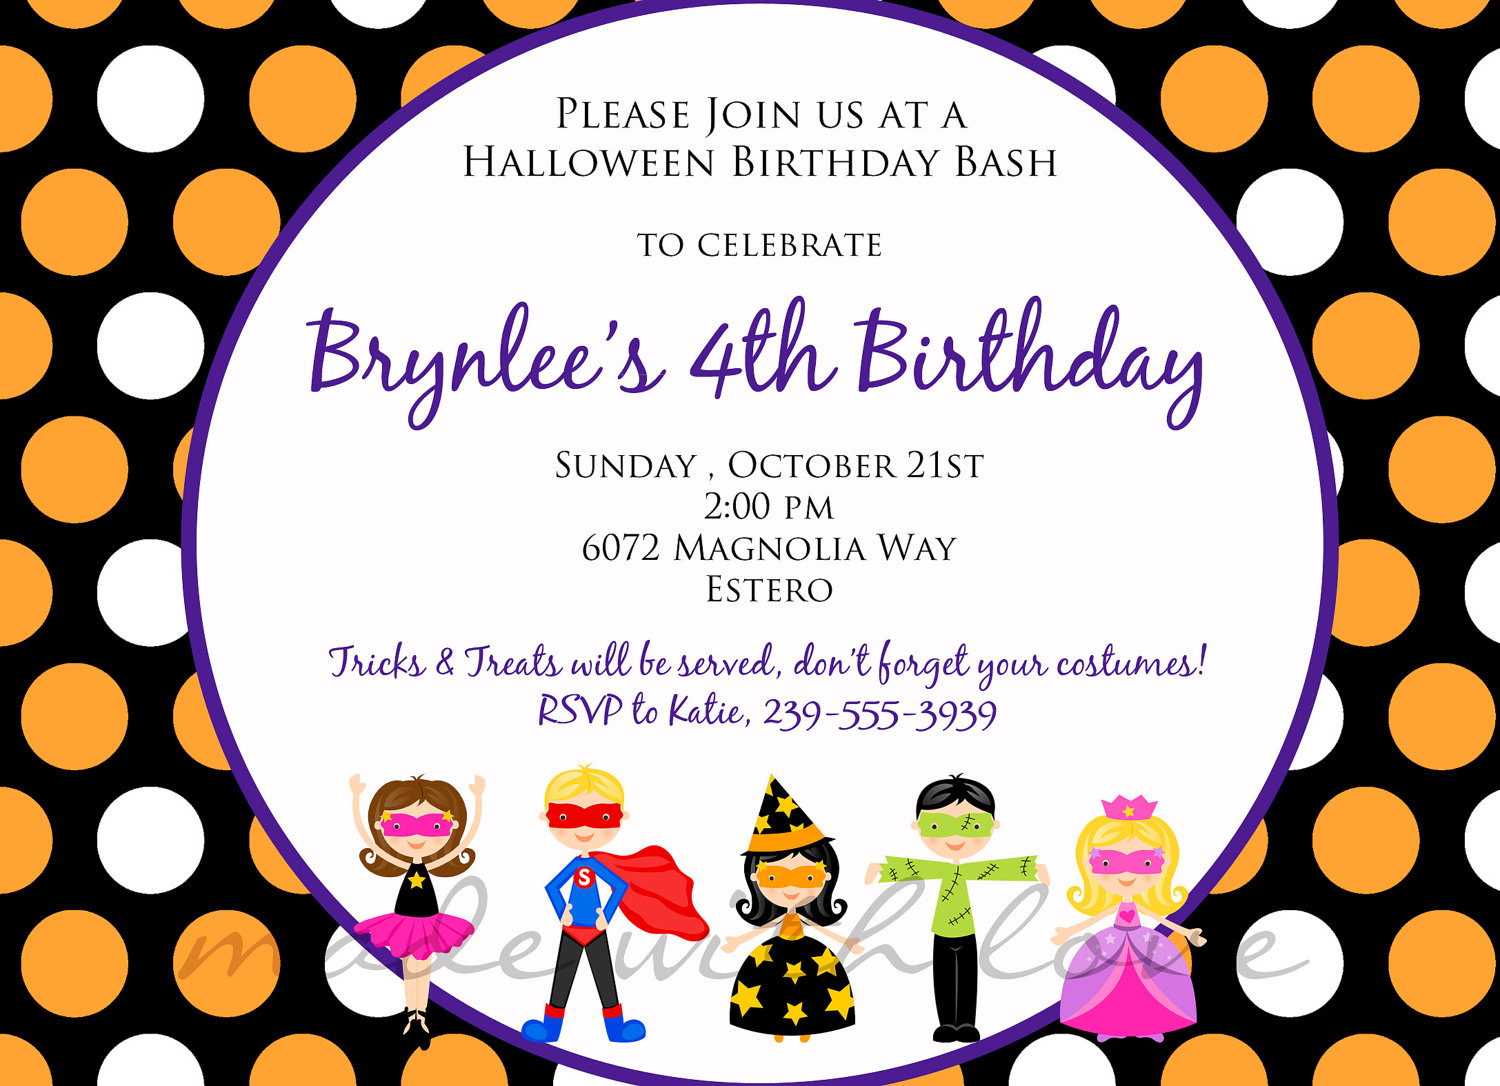 birthday invitation quotes ; brave_40th_birthday_party_invitation_wording_indicates_newest_article_6